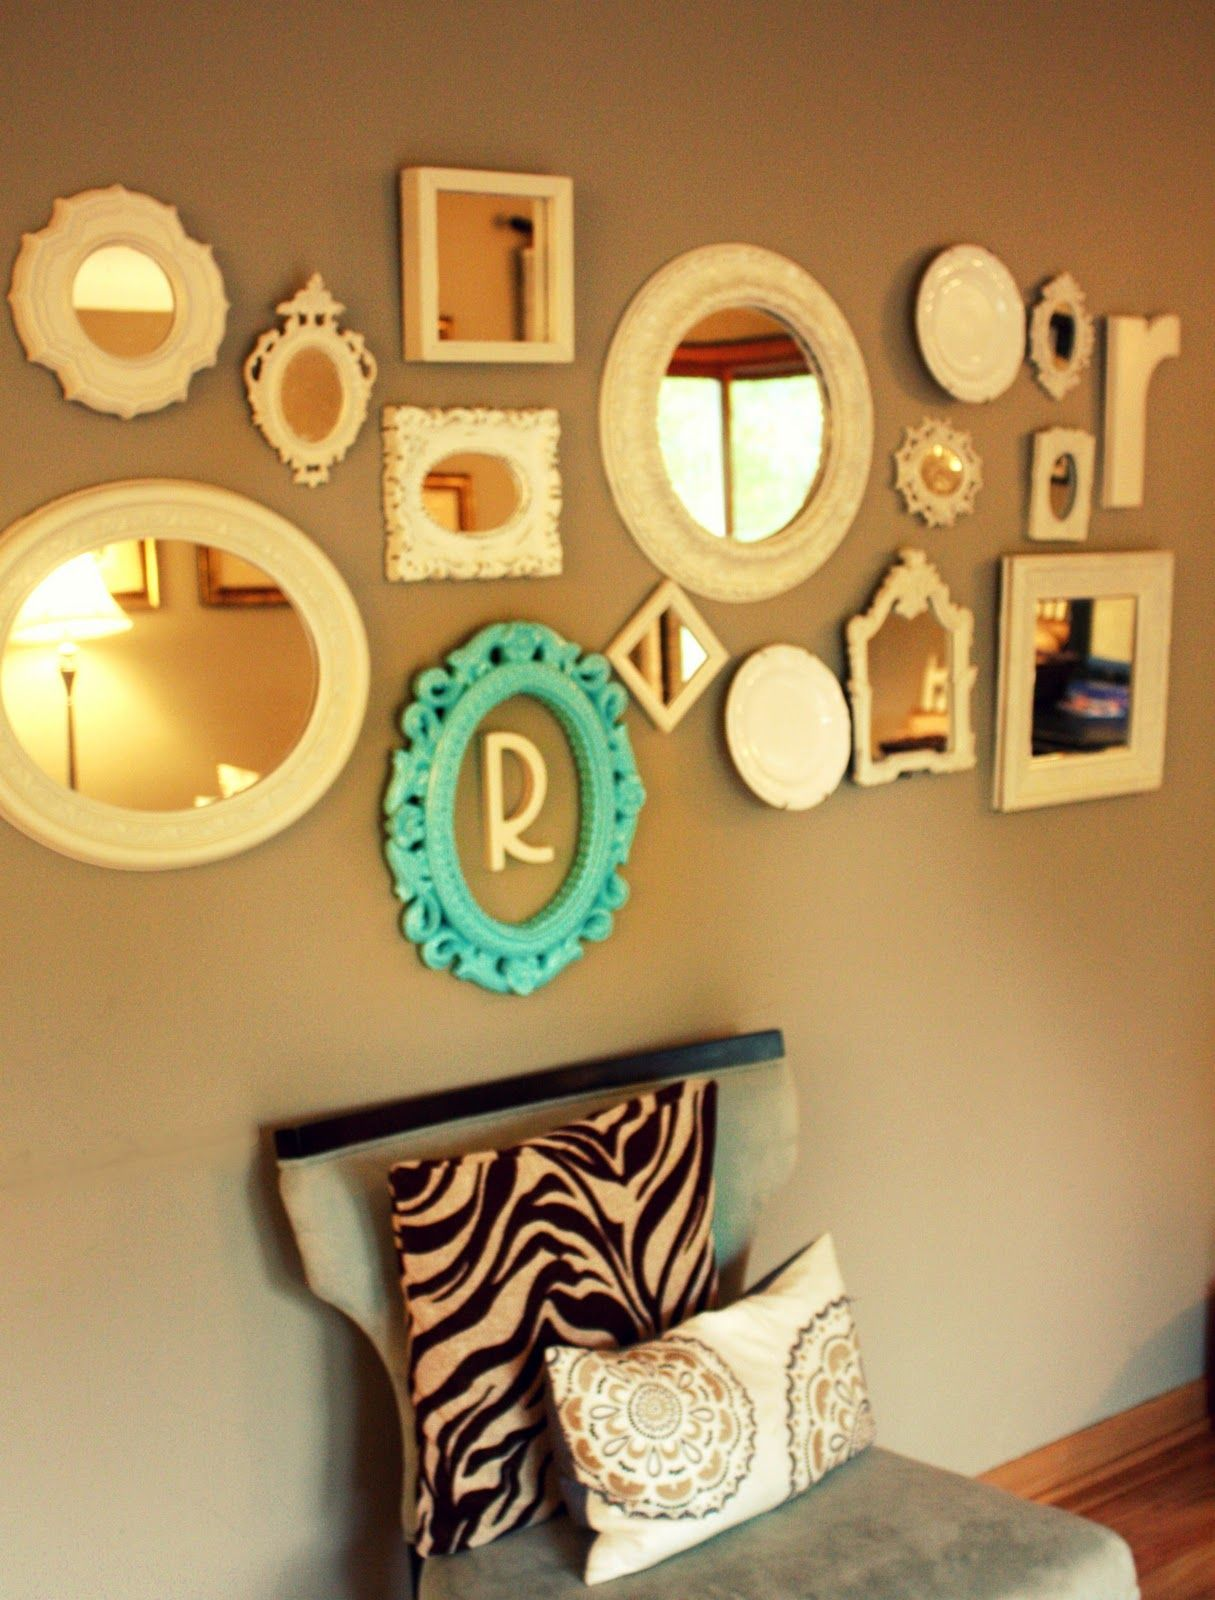 Ronnjae&Ronnie #mirrors collage on the wall | Let\'s Rethink Wall ...